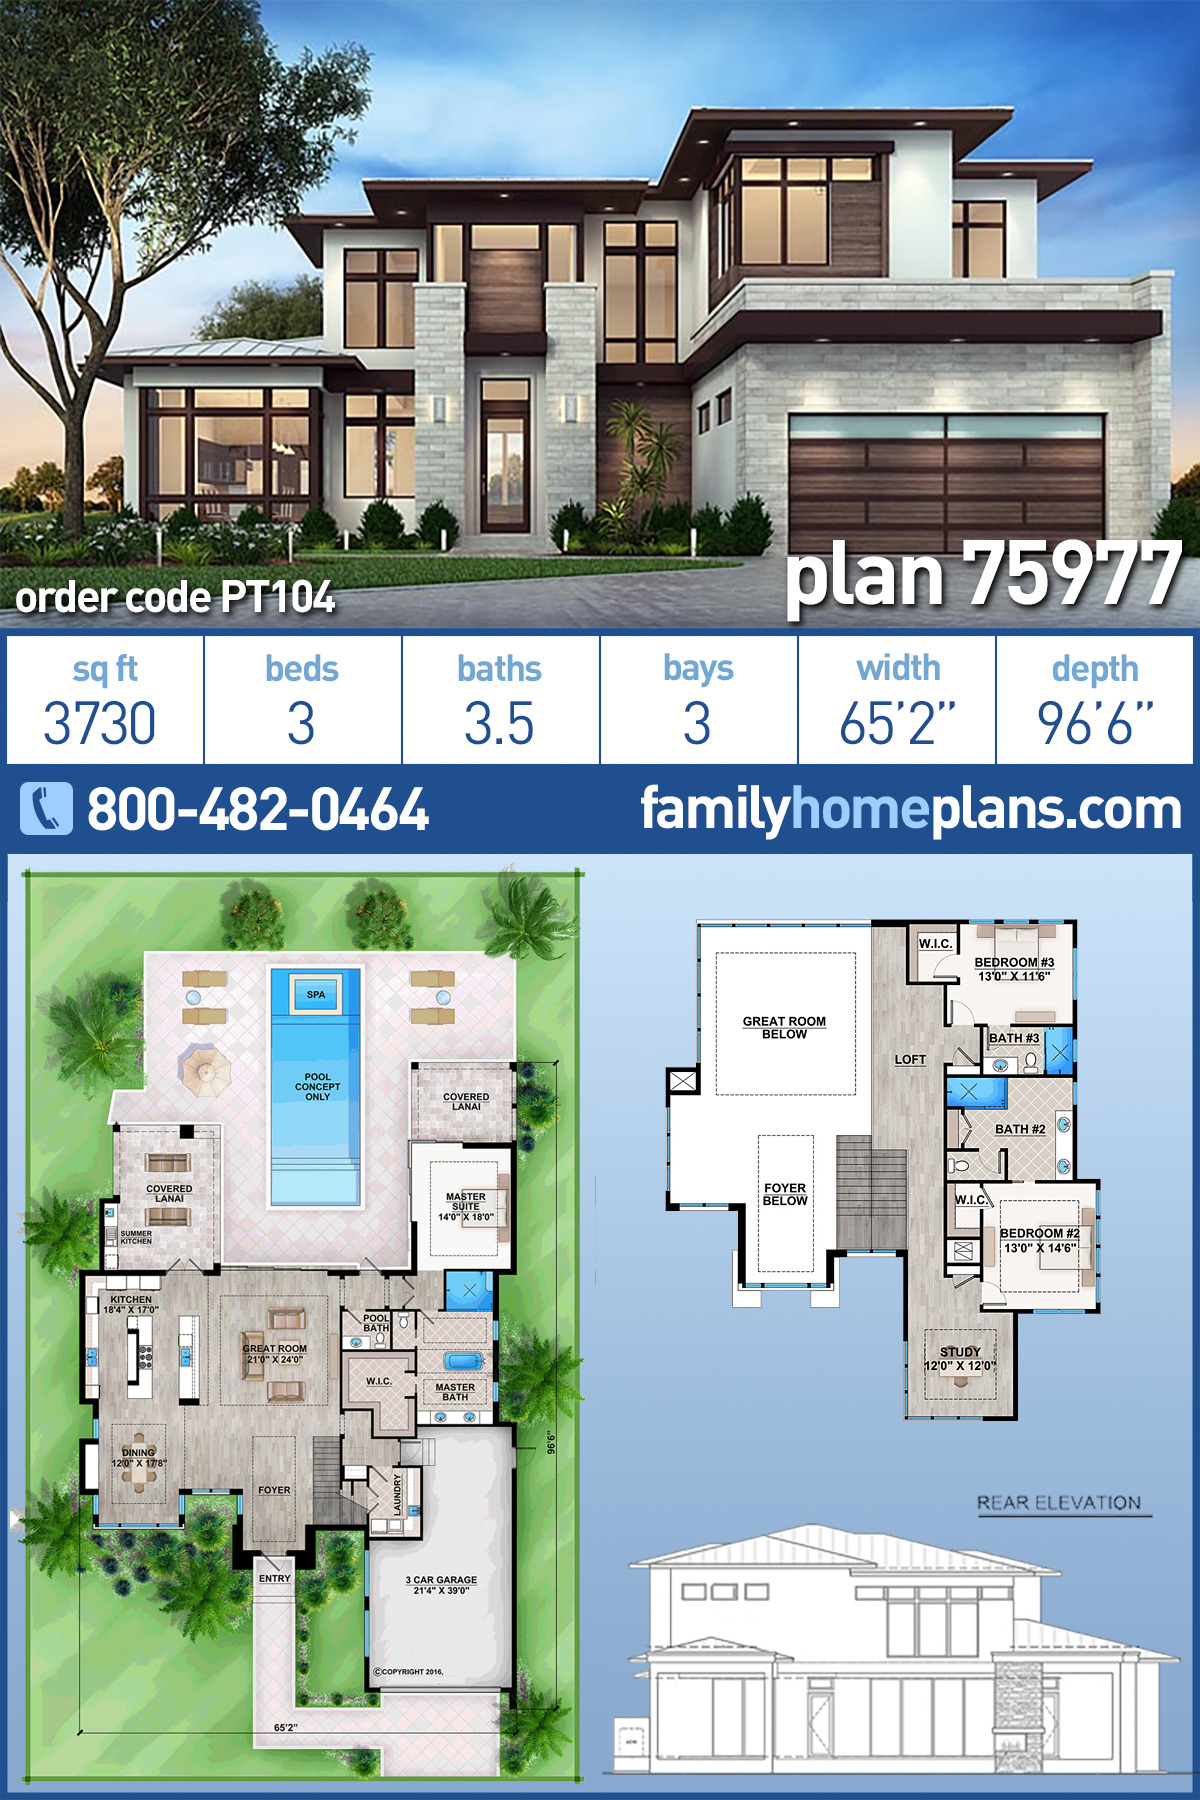 Most Popular House Plans 2014 Beautiful Modern Style House Plan with 3 Bed 4 Bath 3 Car Garage